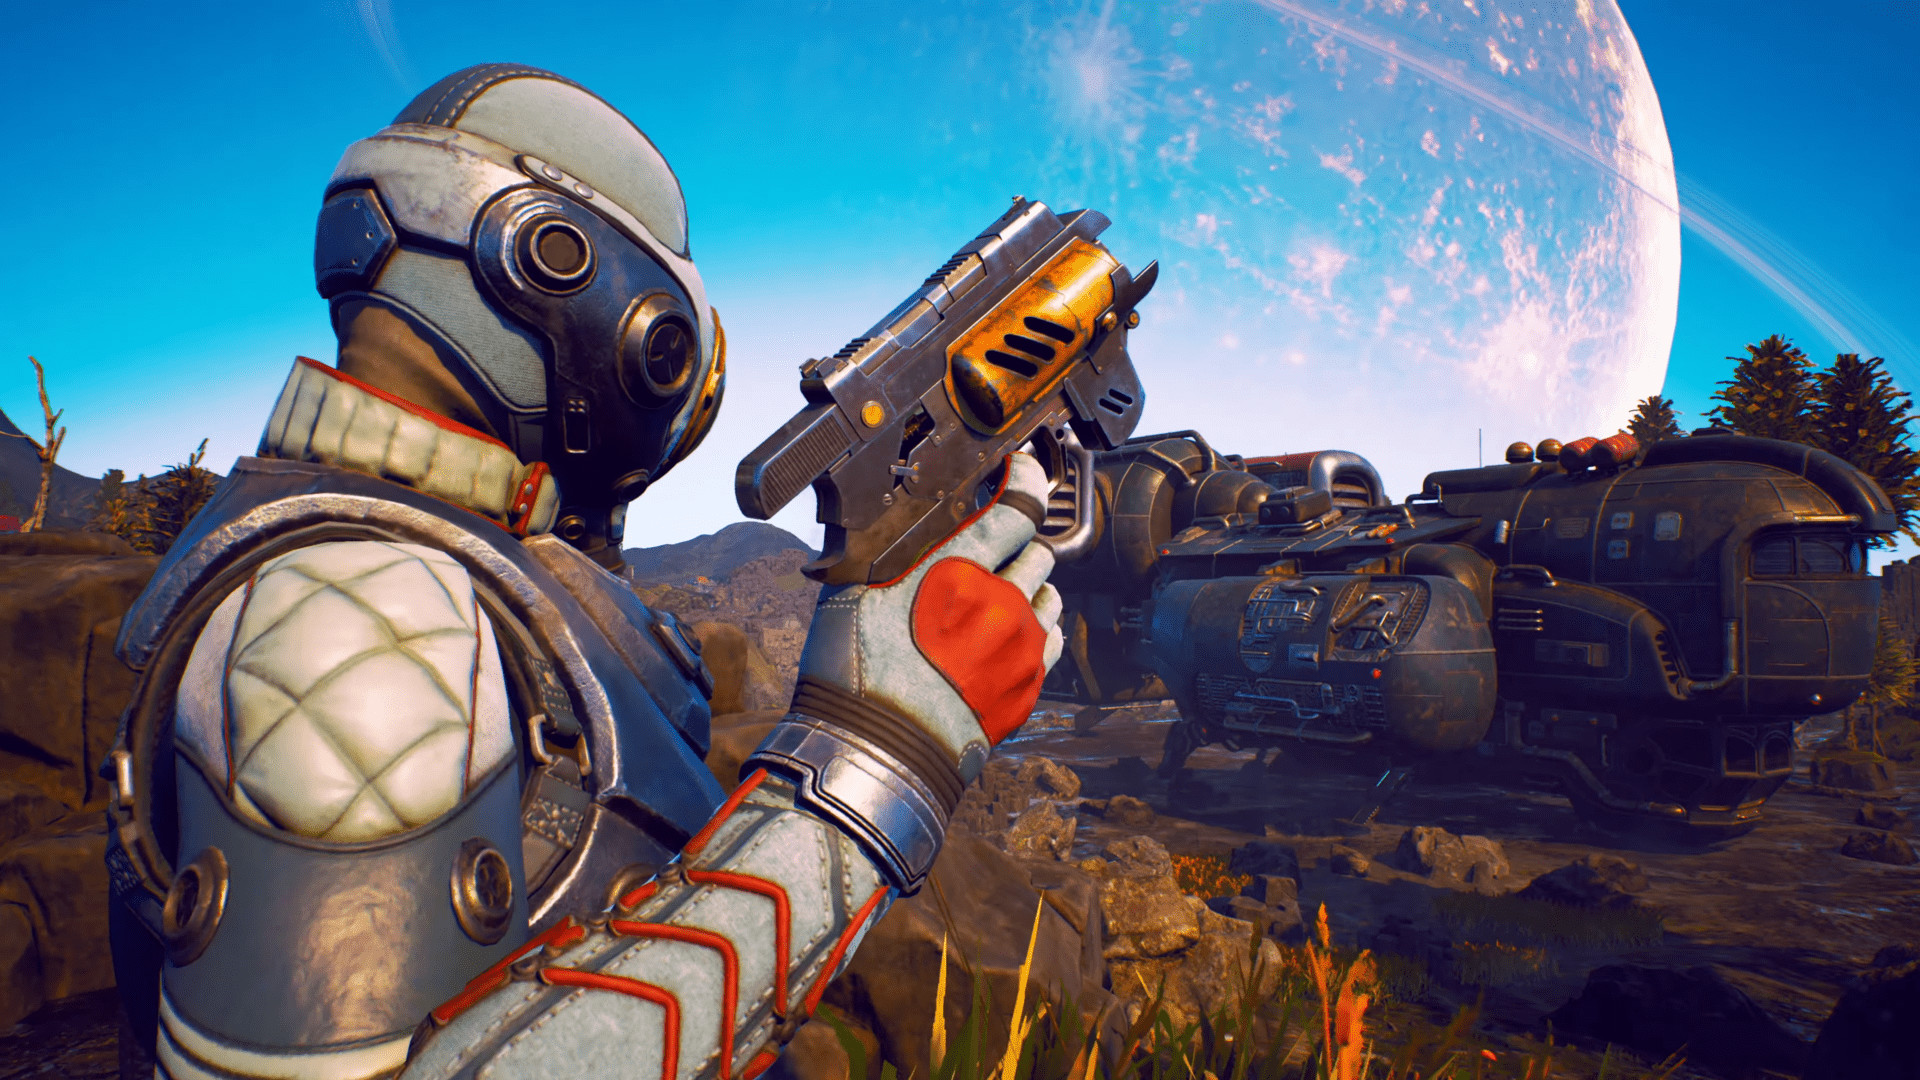 The Outer Worlds E3 trailer